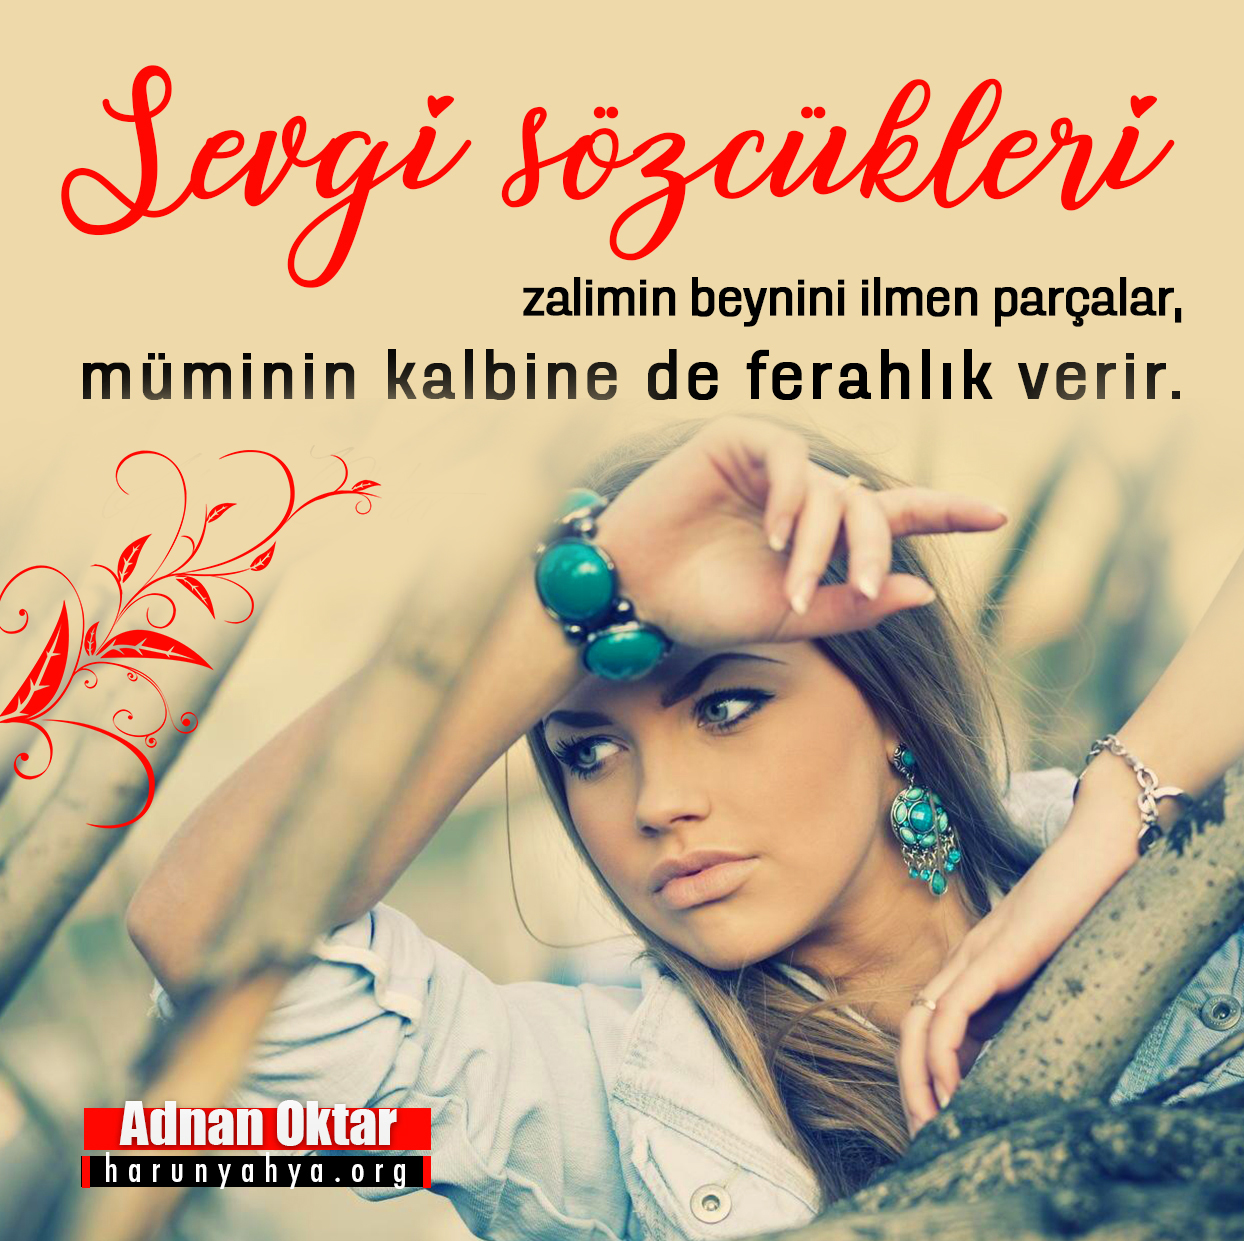 "<table style=""width: 100%;""><tr><td style=""vertical-align: middle;"">Sevgi sözcükleri zalimin beynini ilmen parçalar, müminin kalbine de ferahlık verir.</td><td style=""max-width: 70px;vertical-align: middle;""> <a href=""/downloadquote.php?filename=153111519427.jpg""><img class=""hoversaturate"" height=""20px"" src=""/assets/images/download-iconu.png"" style=""width: 48px; height: 48px;"" title=""Resmi İndir""/></a></td></tr></table>"